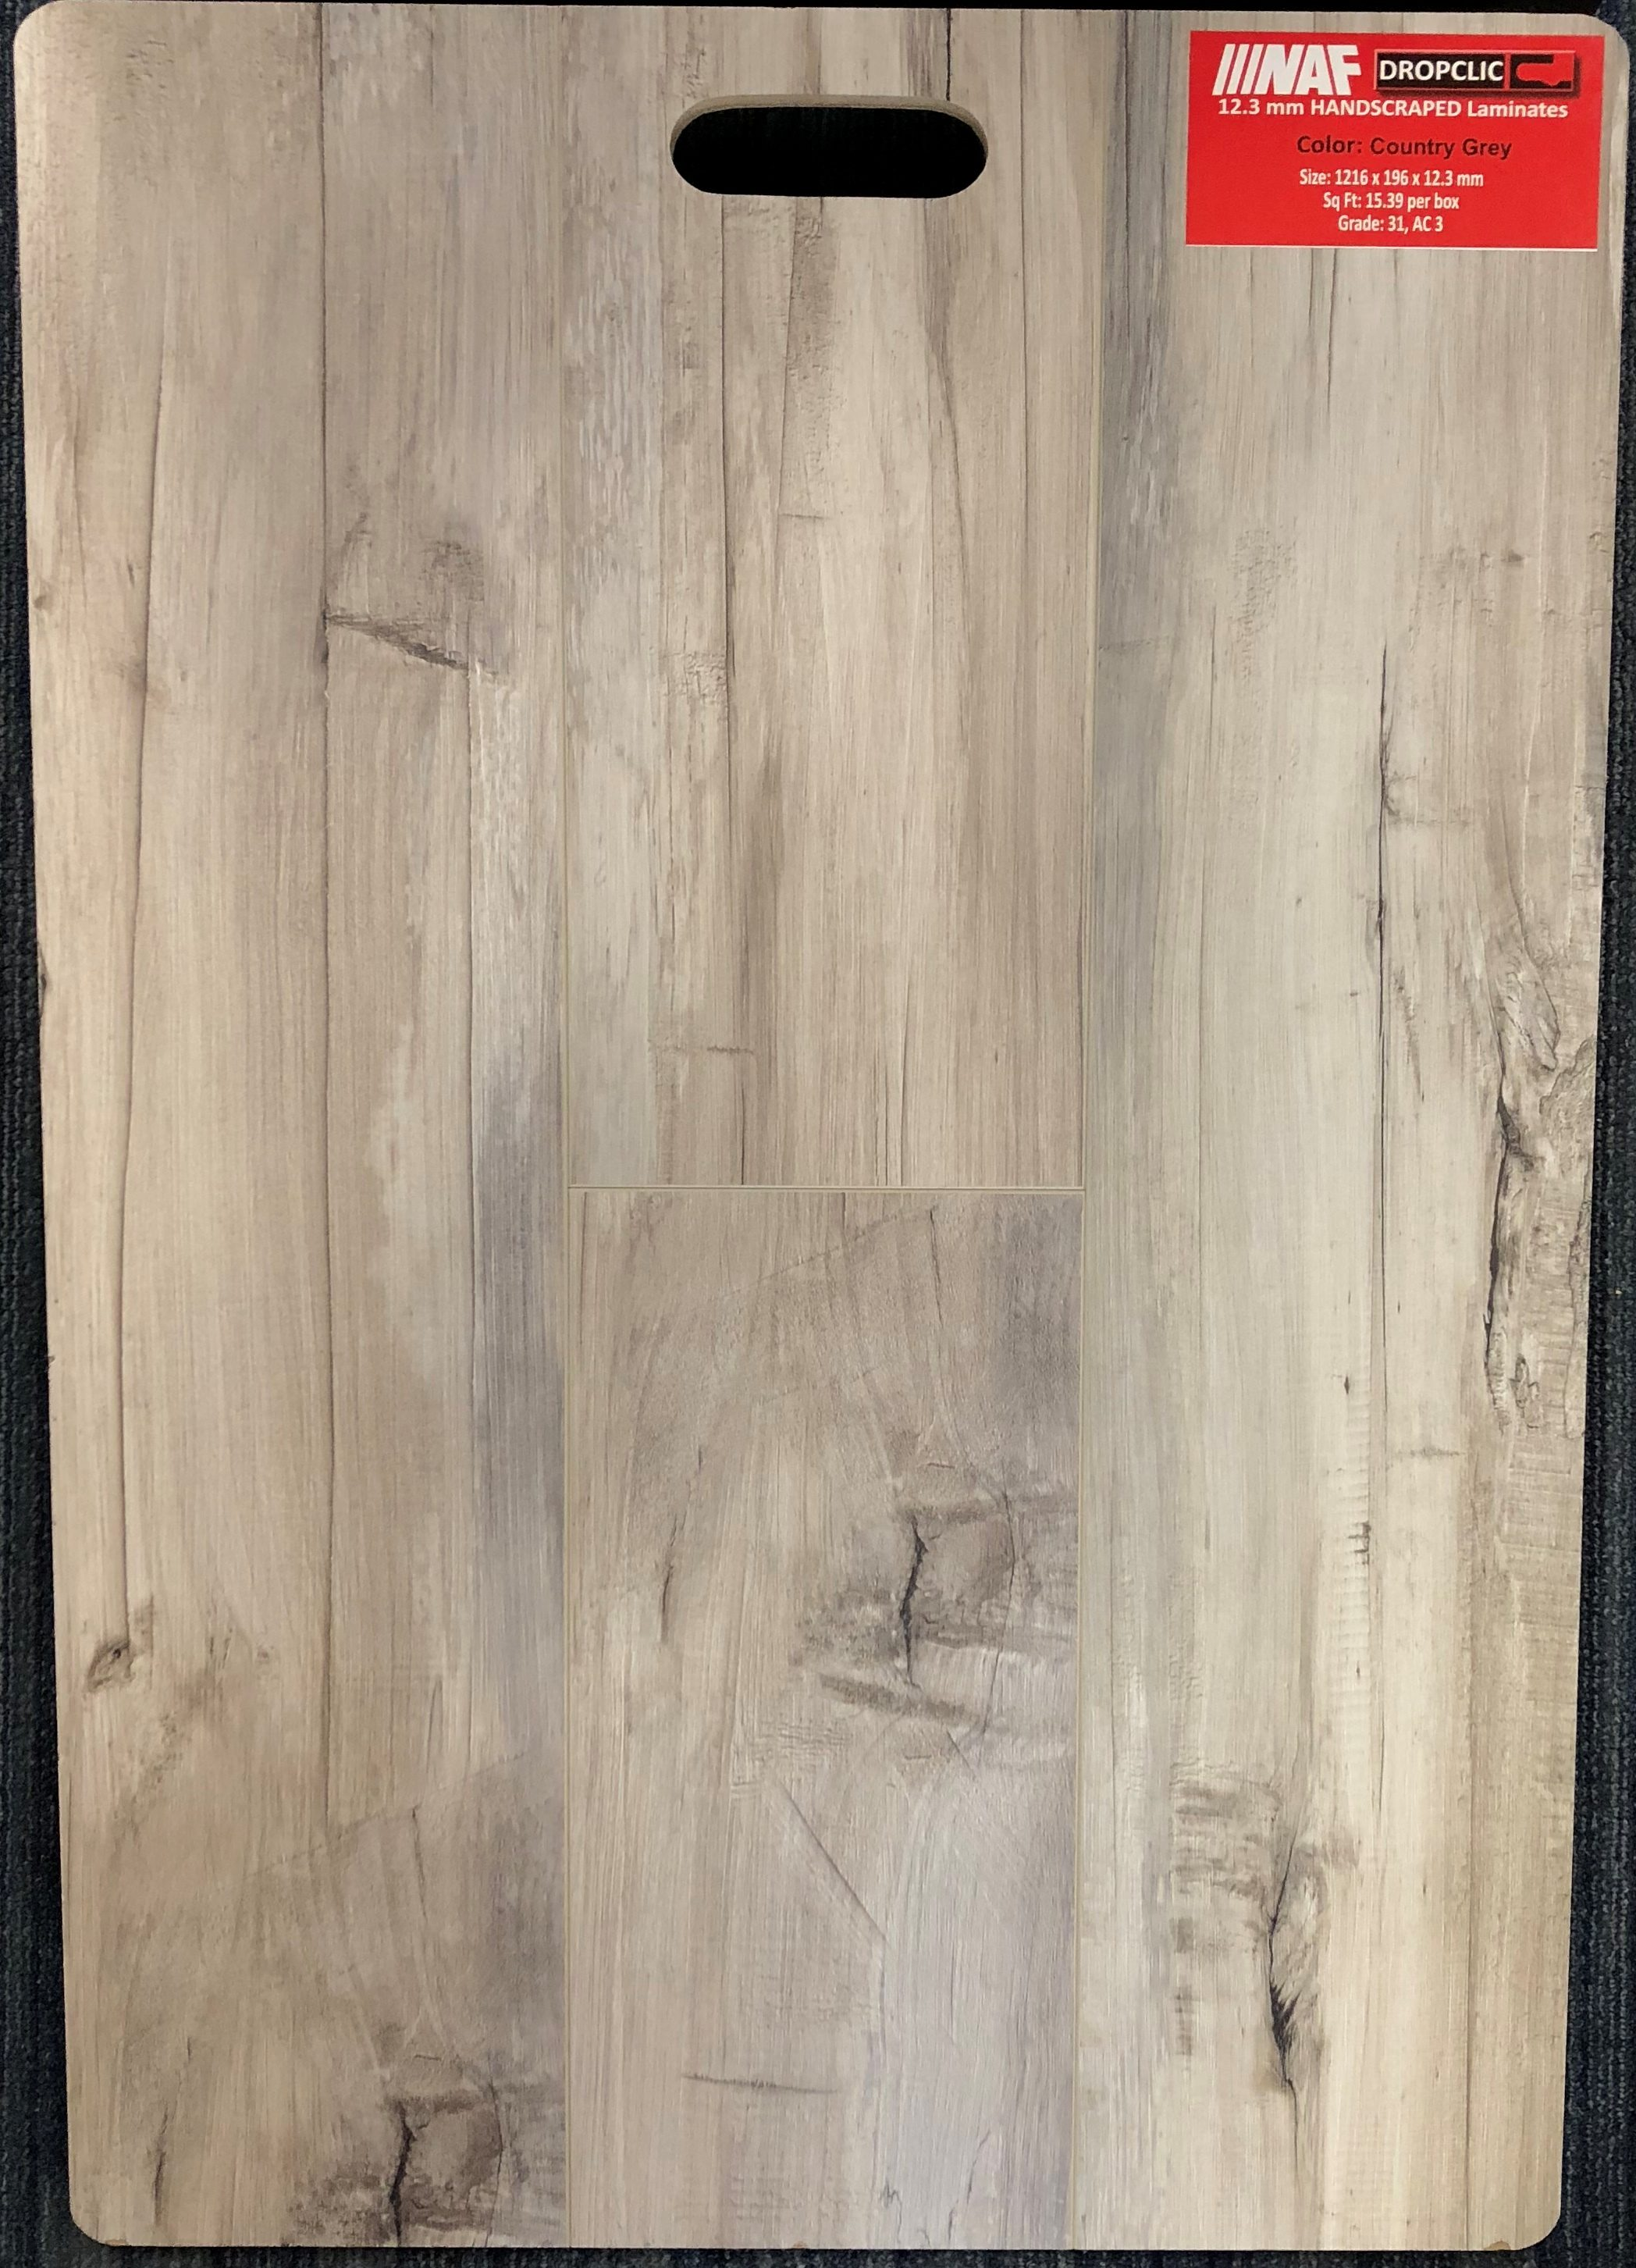 Country Grey NAF 12.3mm Handscraped Laminate Flooring Dropclic Image